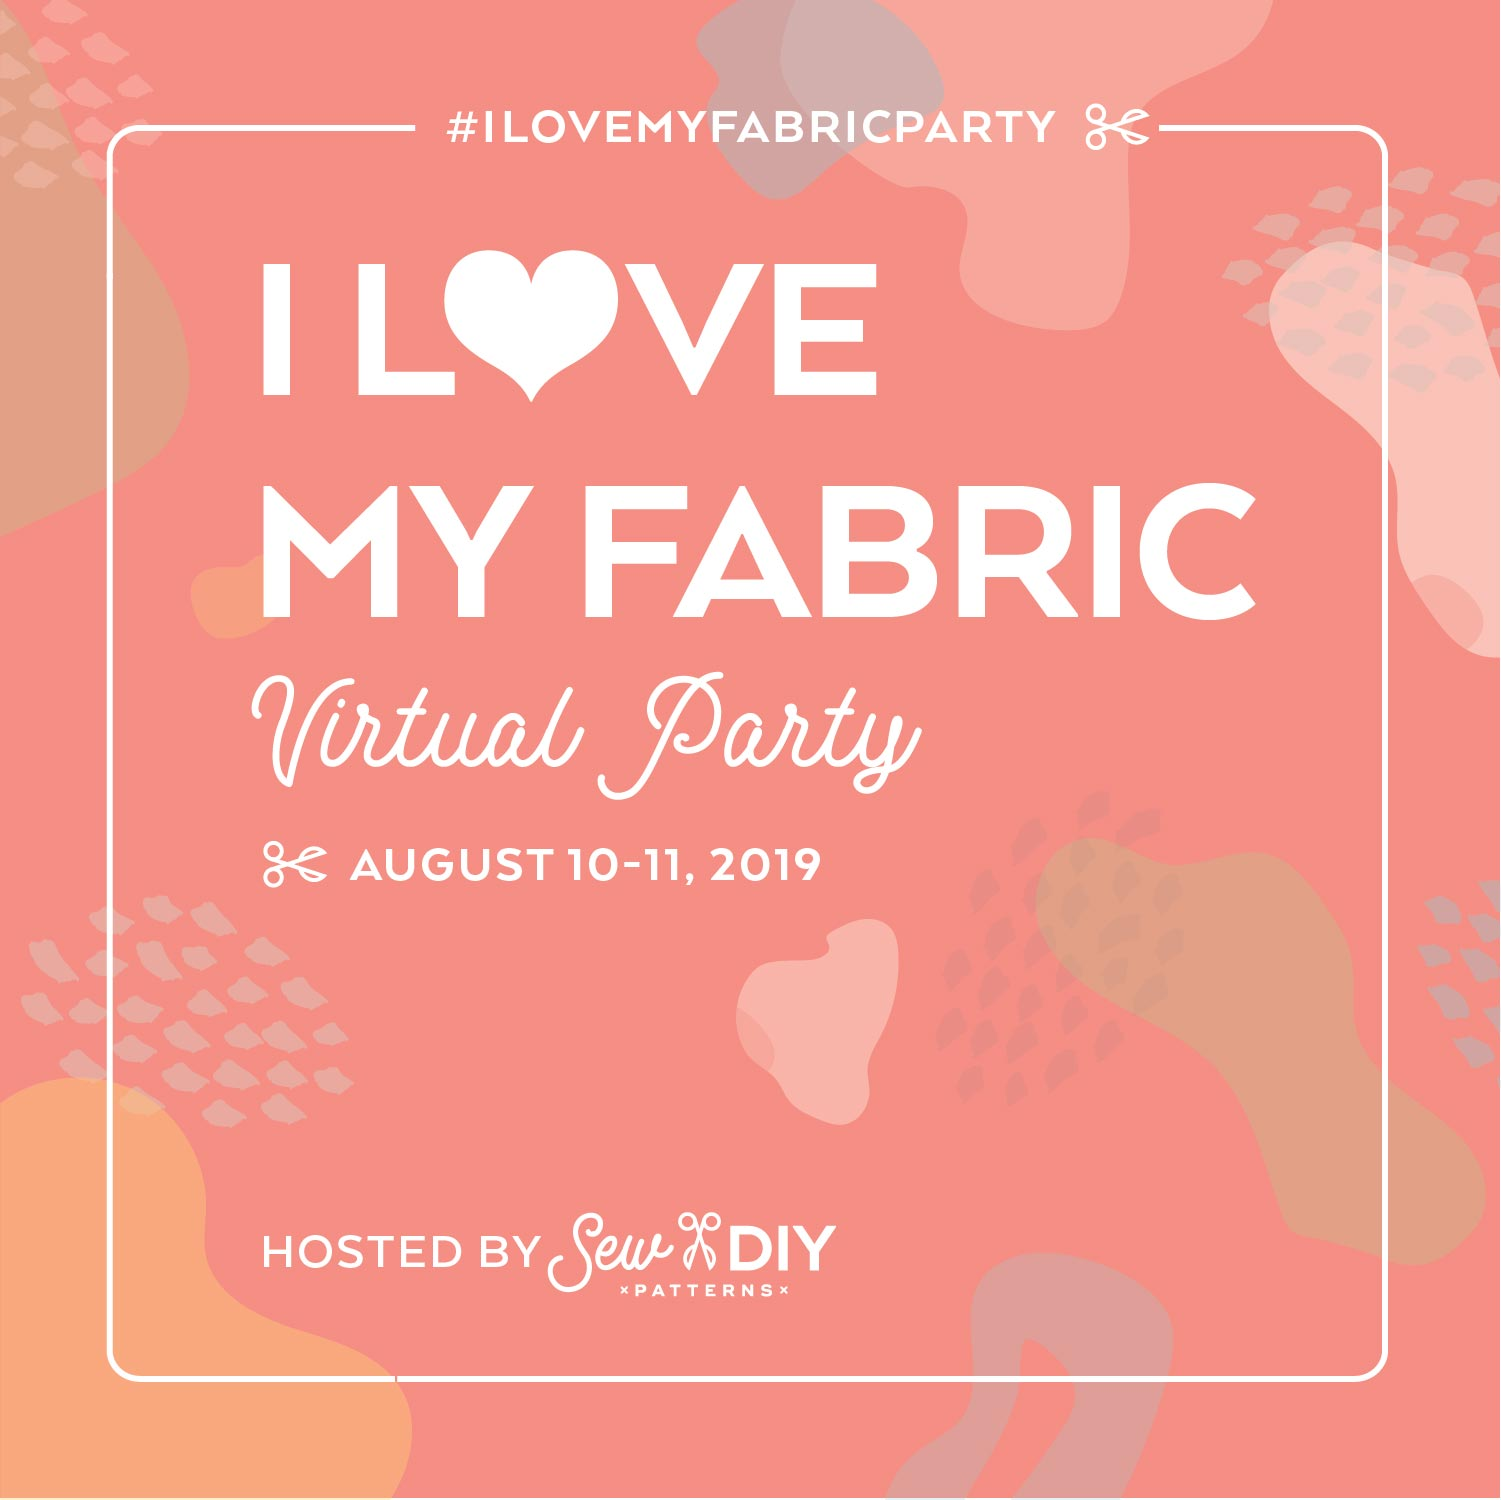 You're invited to a Fabric Party - Sew DIY